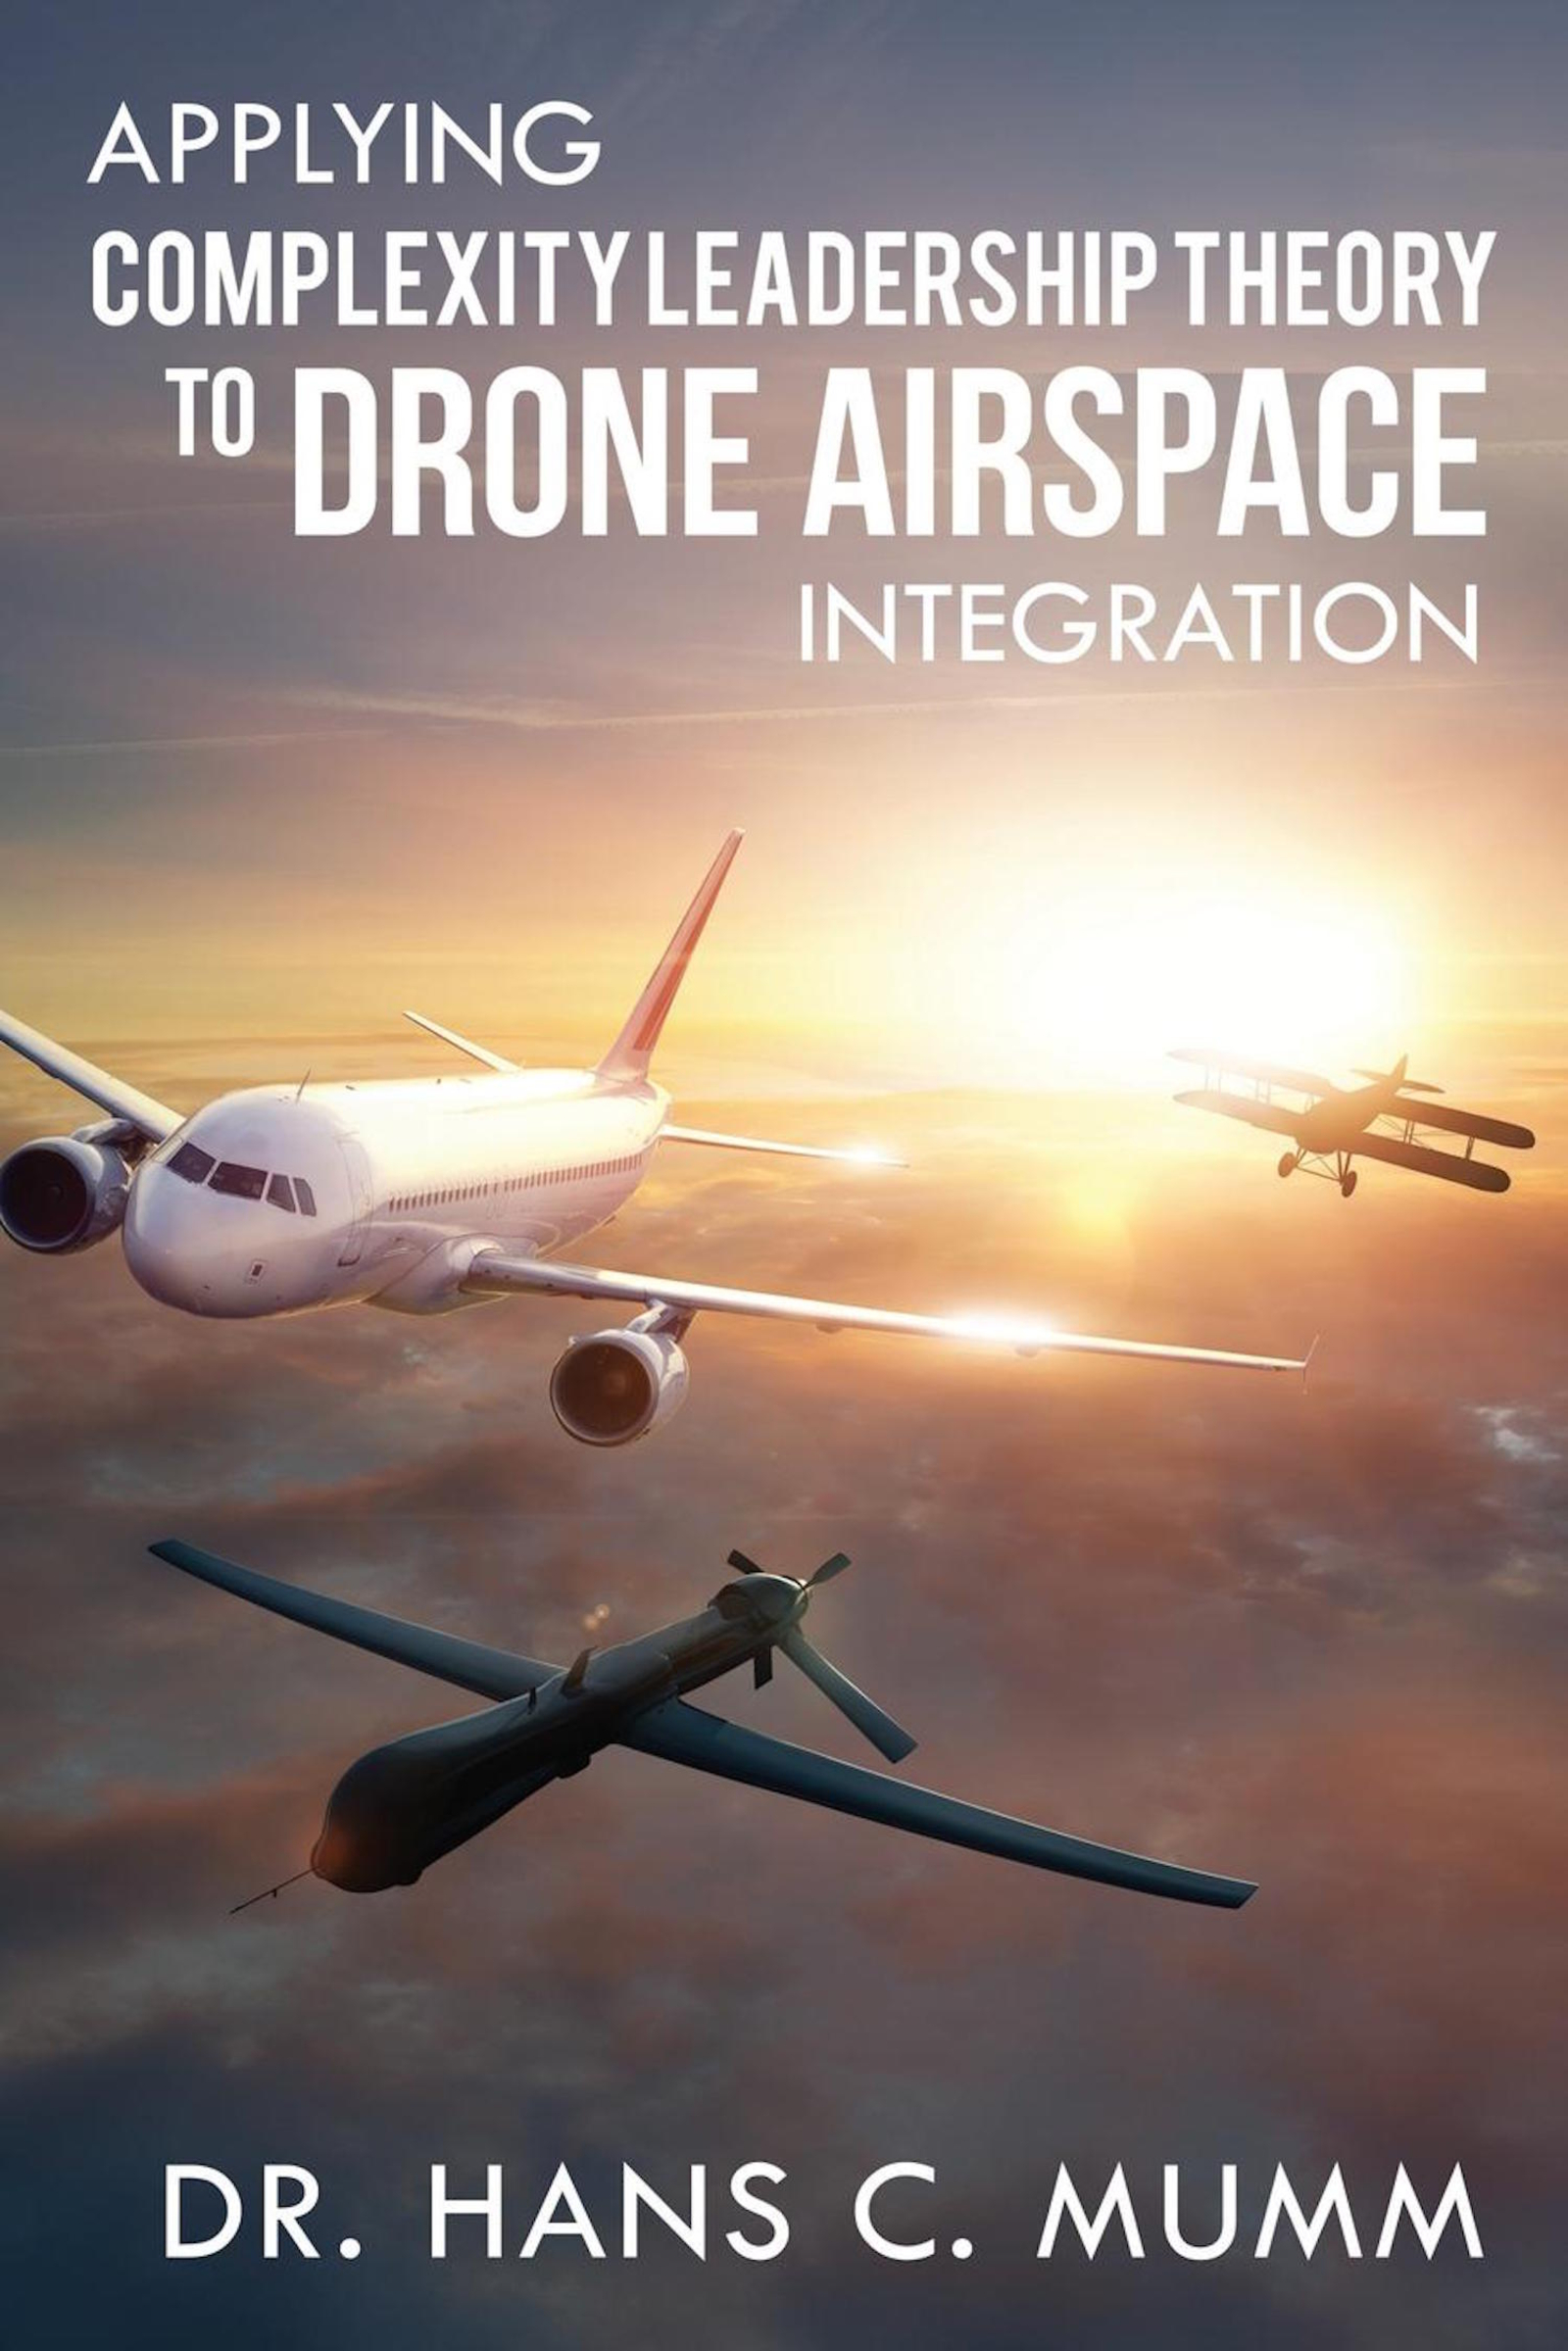 Ebook rental (60 days) #drone